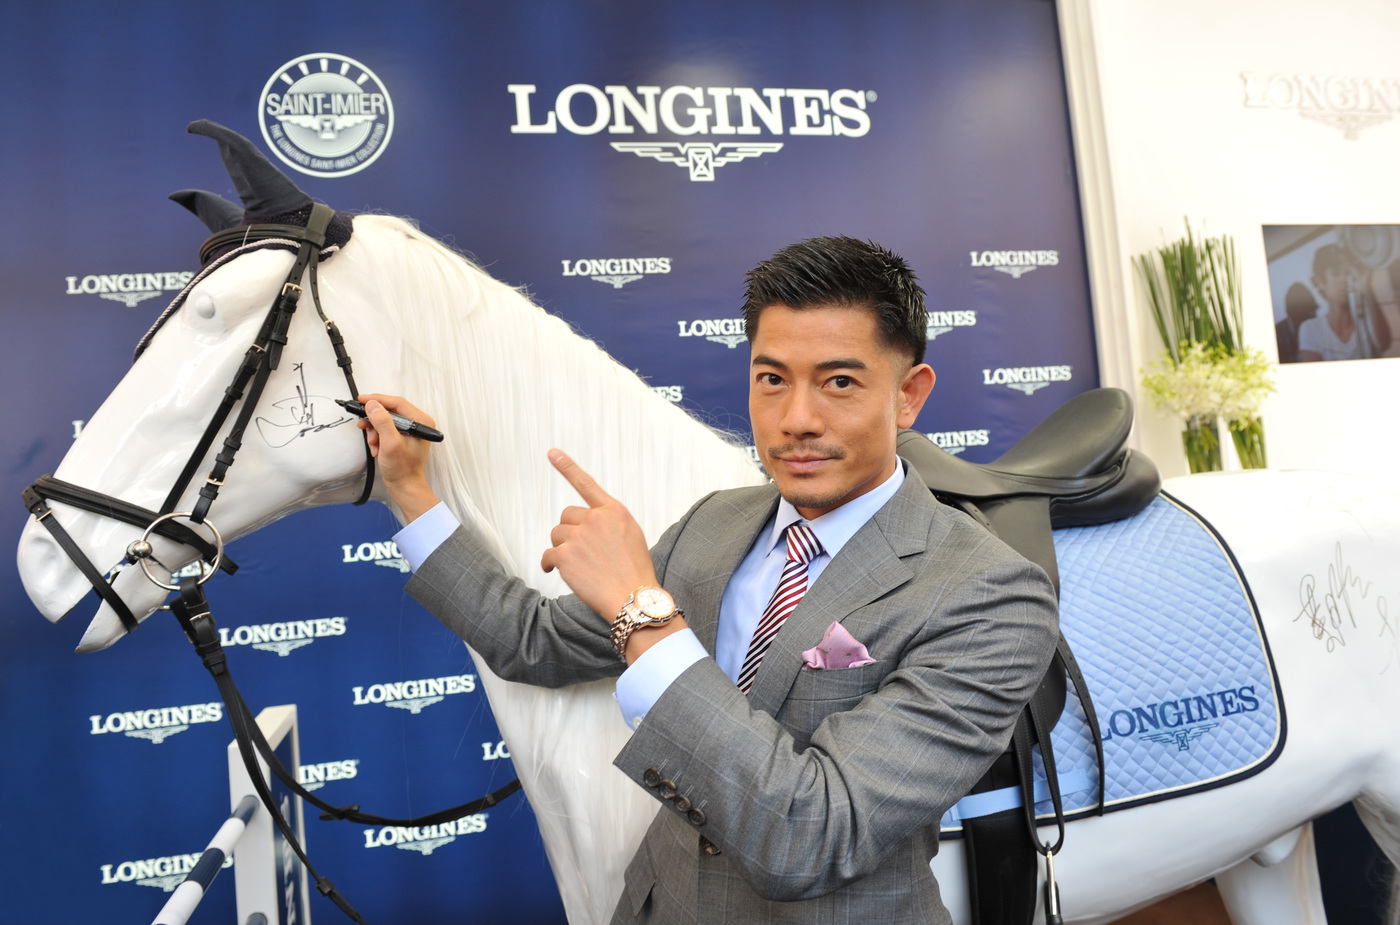 Longines Show Jumping Event: Enjoying the beauty of equestrian sport at the Longines Equestrian Beijing Masters 1